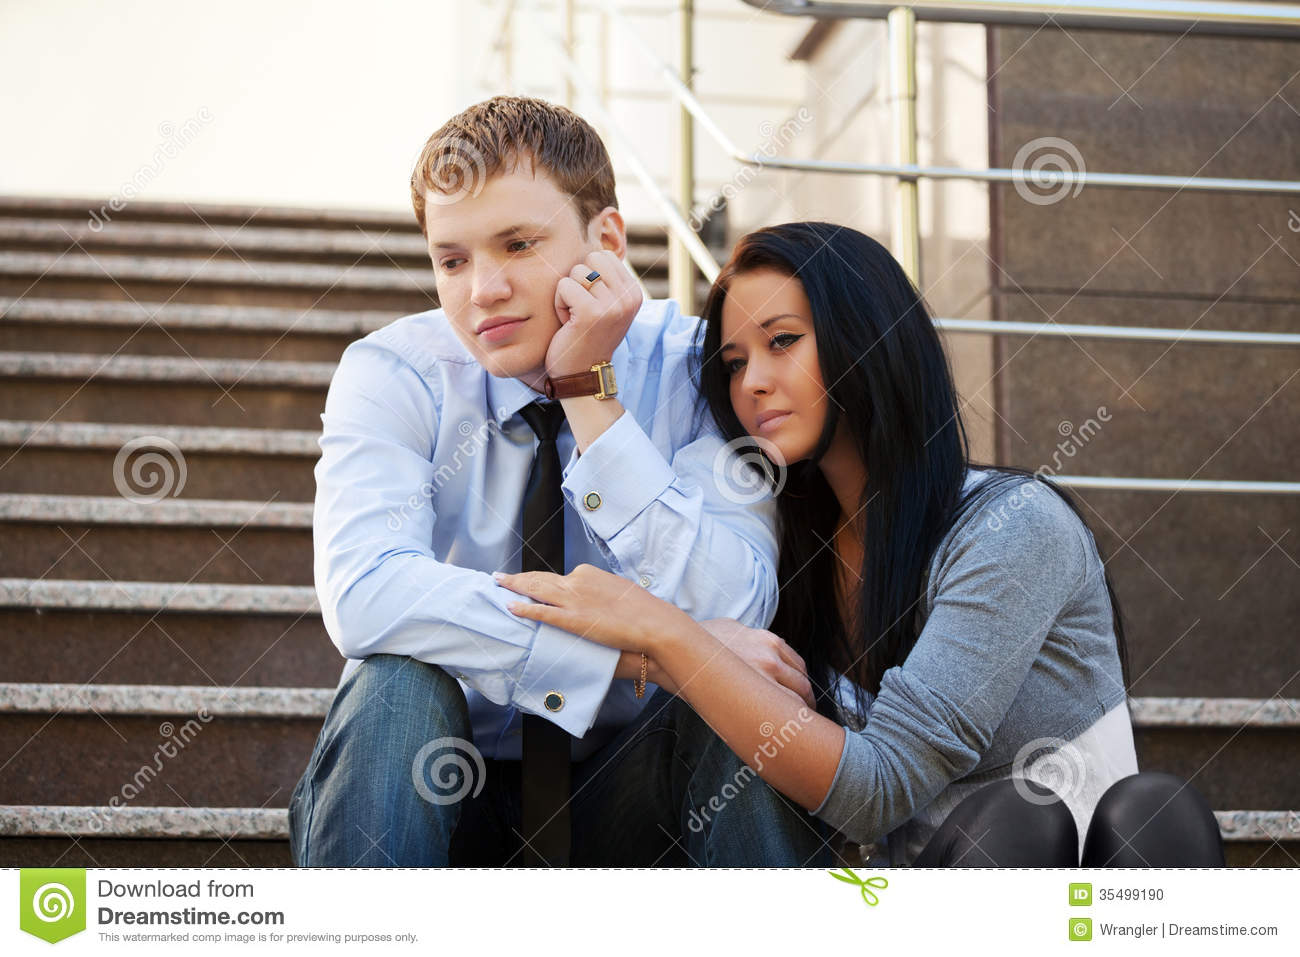 Sad young couple in depression sitting on the steps